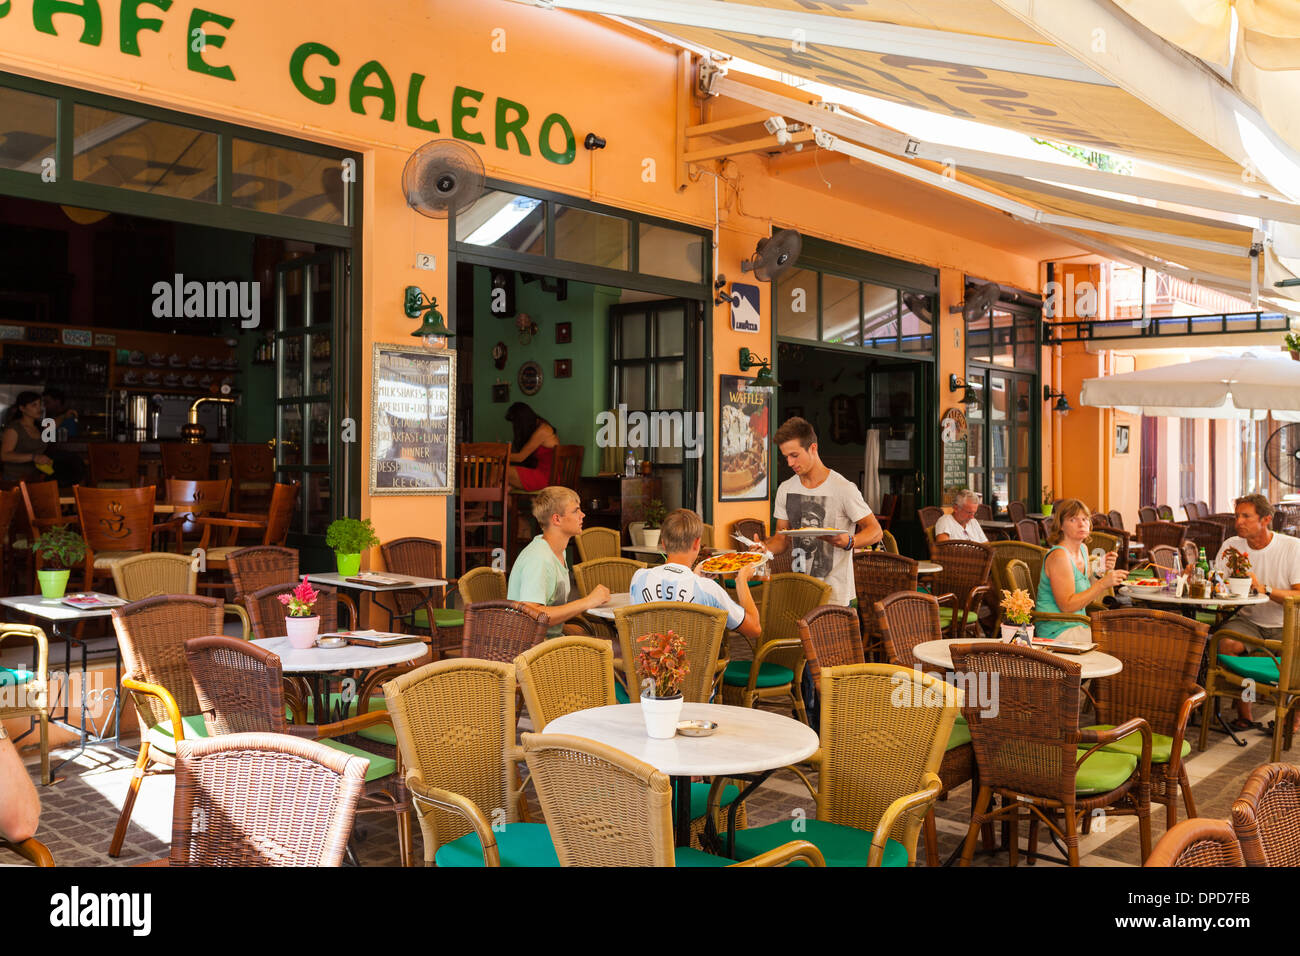 Cafe Galero Is A Mediterranean European Style Restaurant